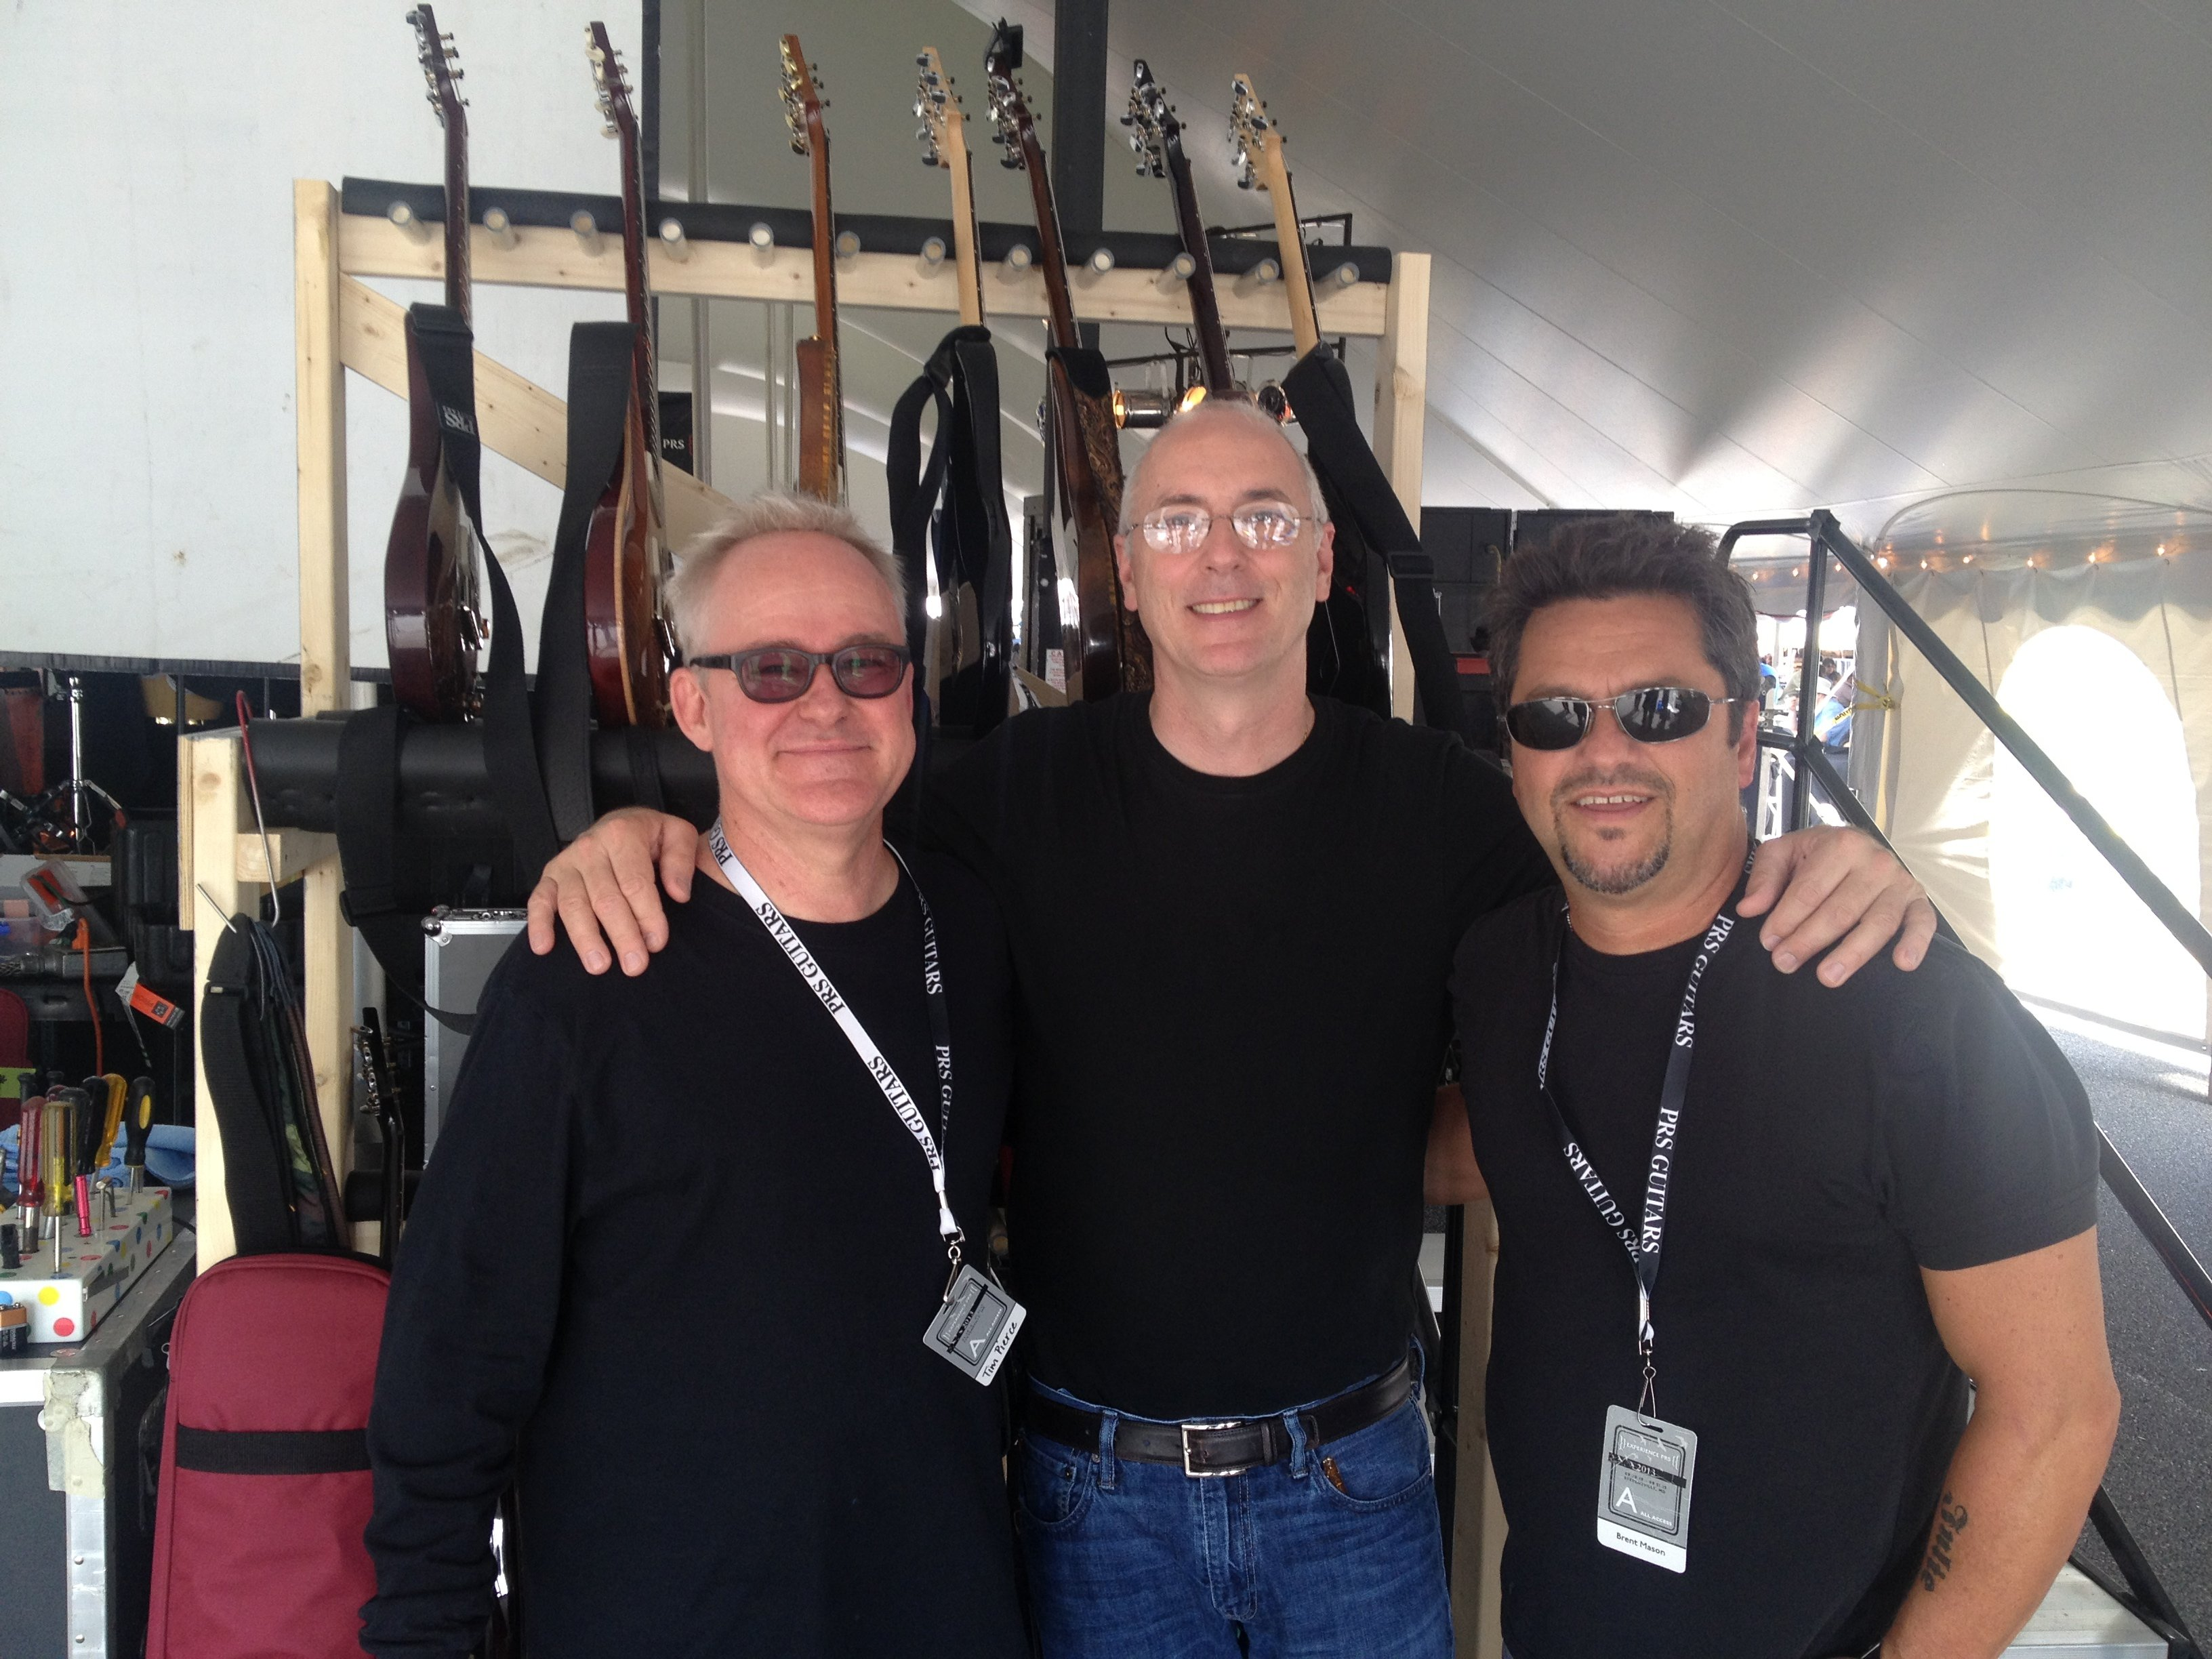 Tim Pierce, Paul Reed Smith and Brent Mason